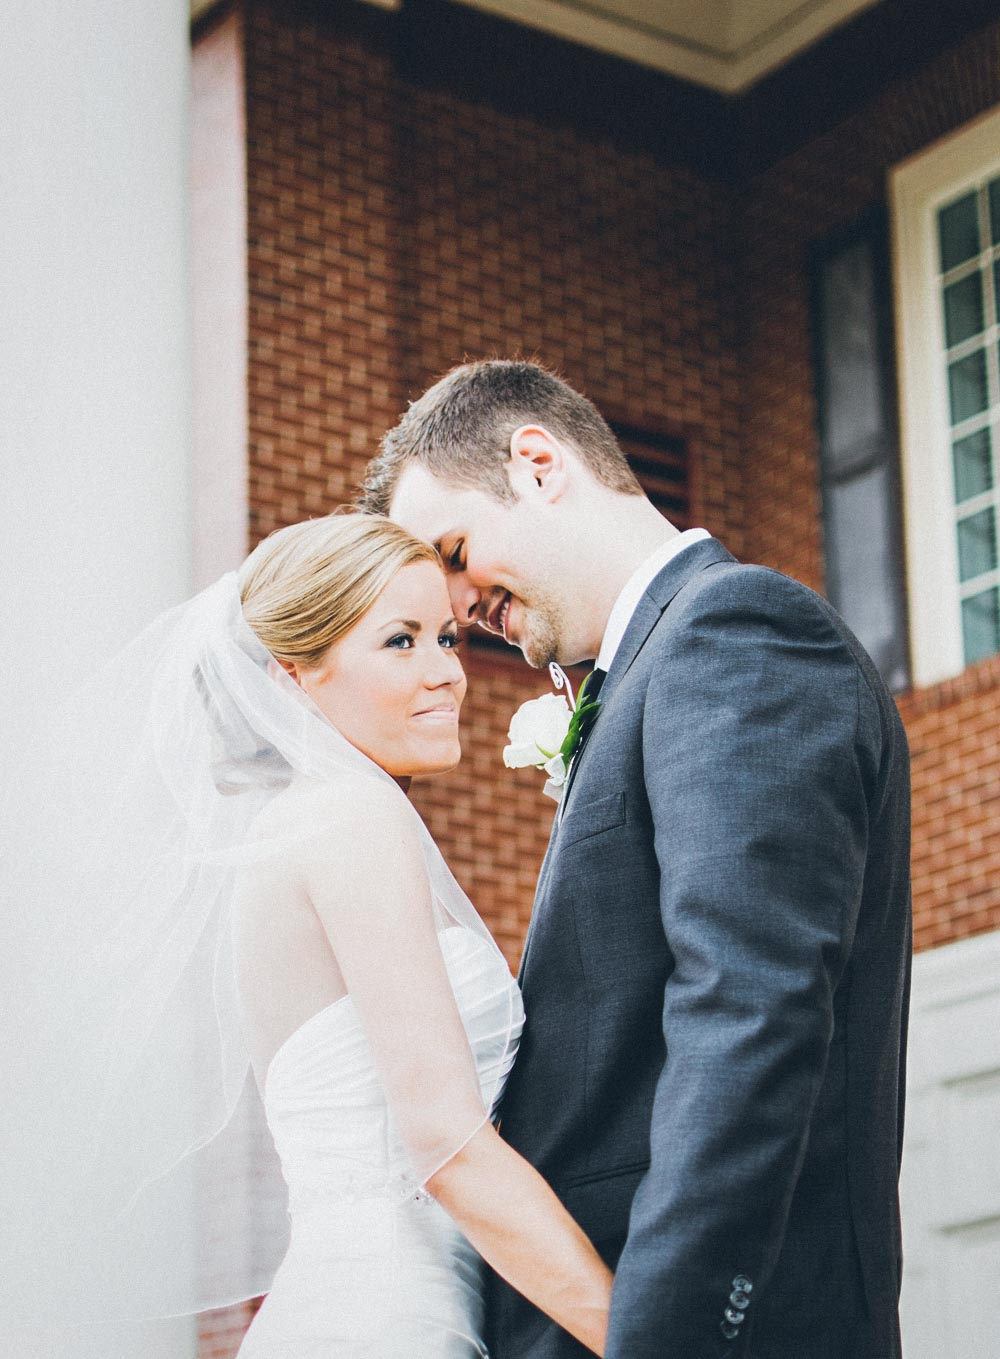 bride and groom touching foreheads in front of church